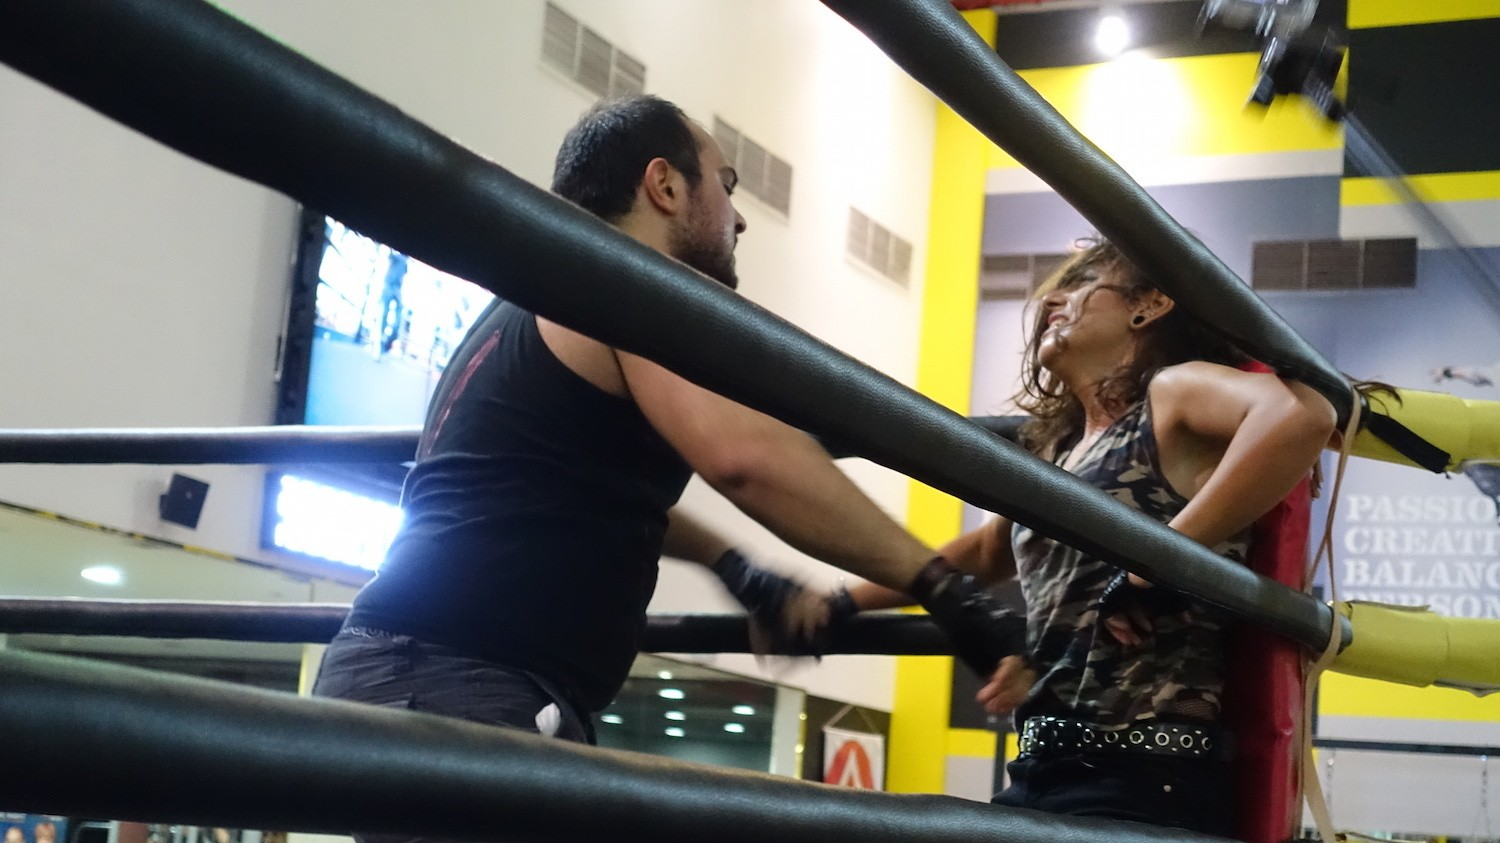 The Middle East's First Woman Pro Wrestler Suplexes The Patriarchy